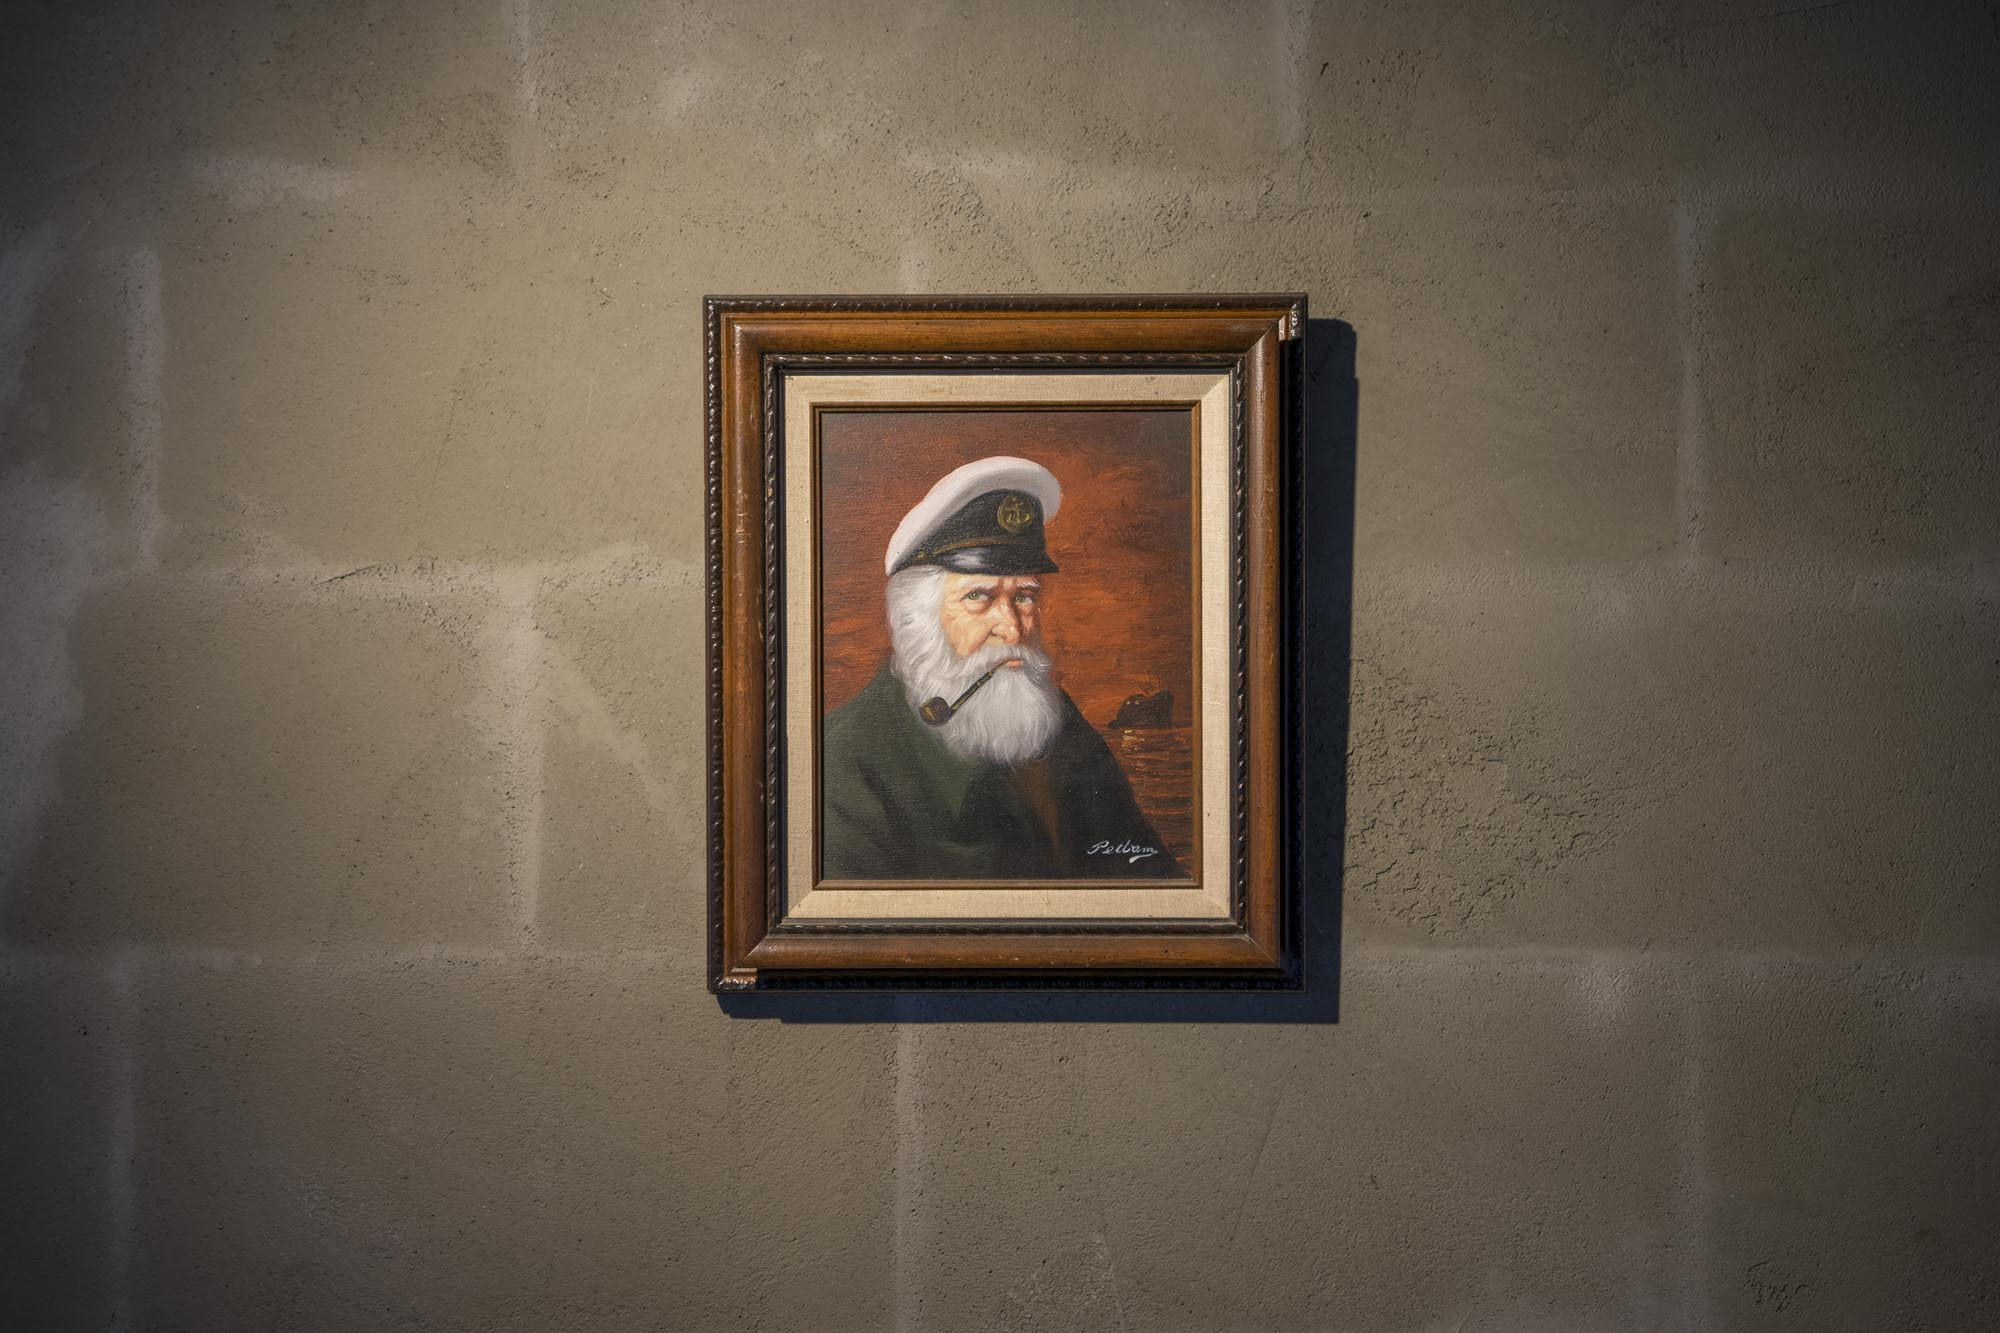 A frame of a captain looks out at diners at Westward in Seattle.